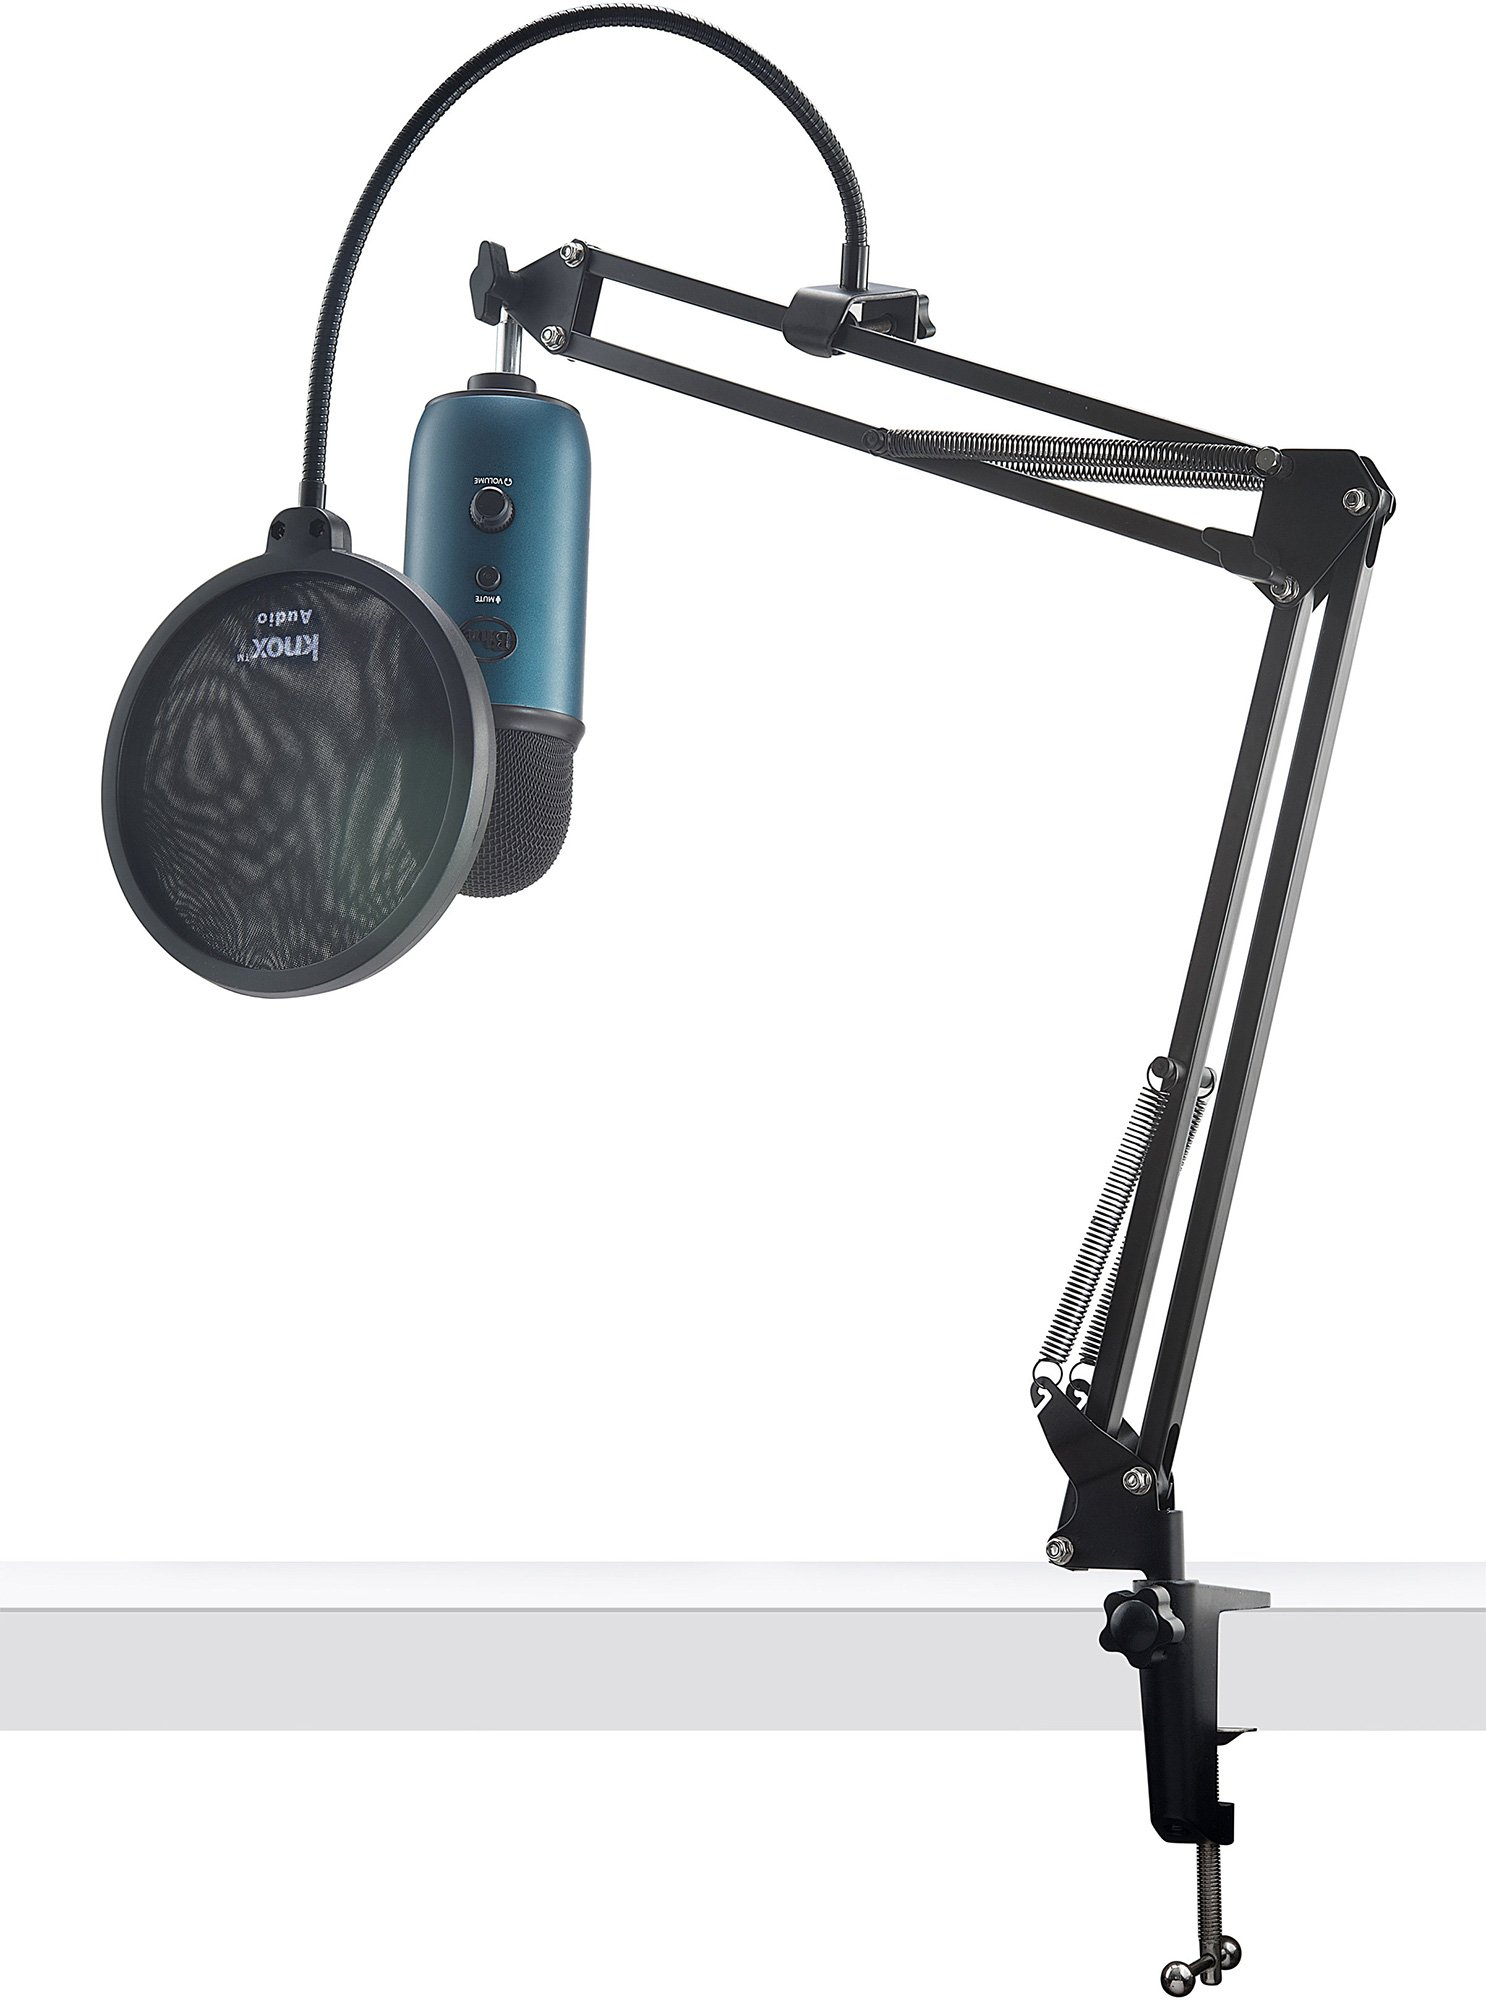 Nady SSM-3 Shock Mount for Nady SCM 900//910//920//1000 and TCM 1000 studio microphones